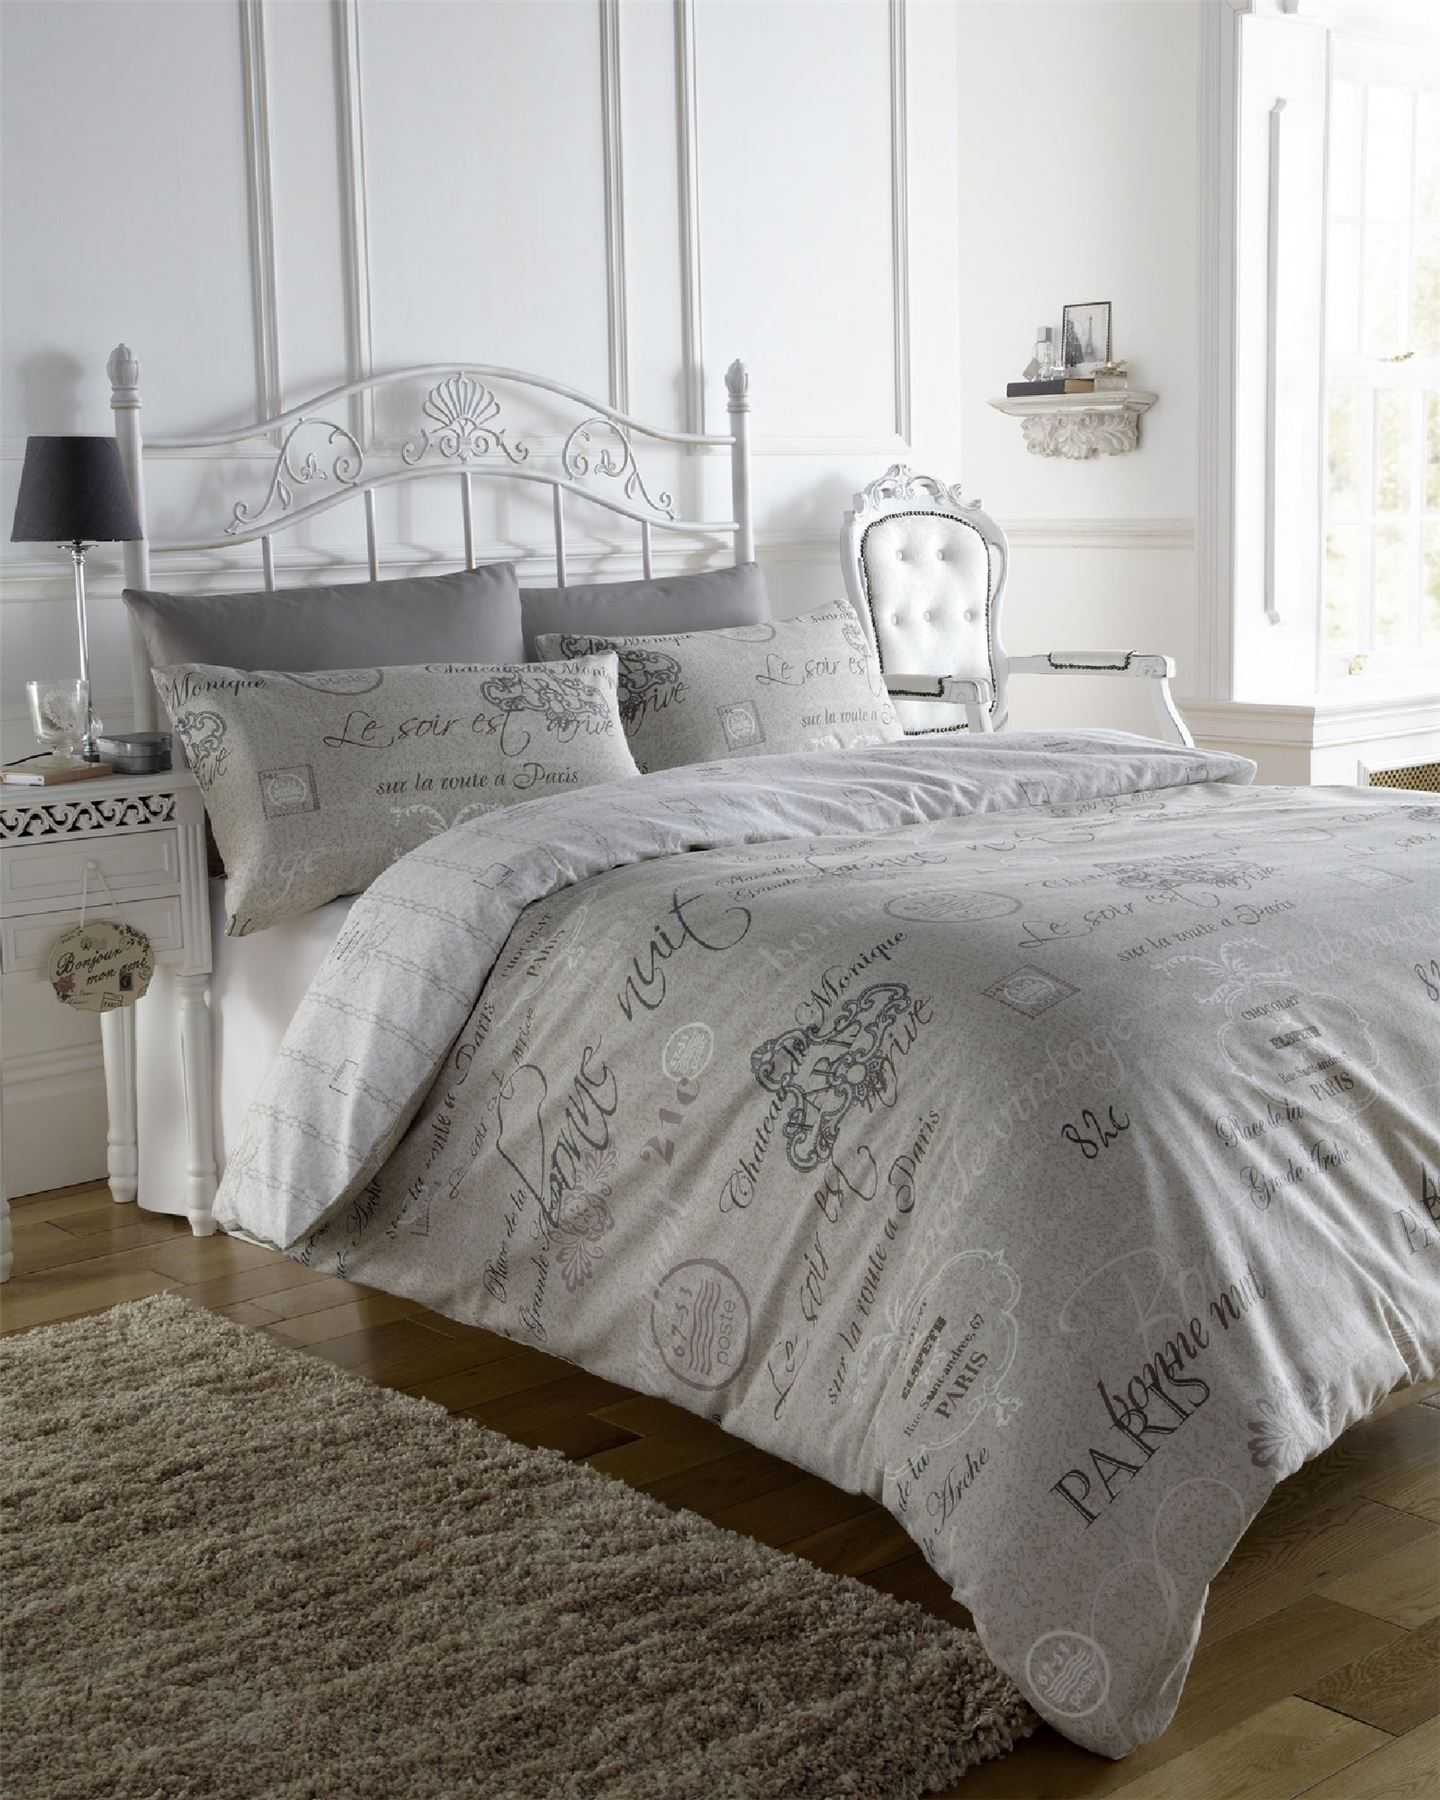 SCRIPT PARIS STYLISH FRENCH CALLIGRAPHY DUVET QUILT COVER BEDDING SET